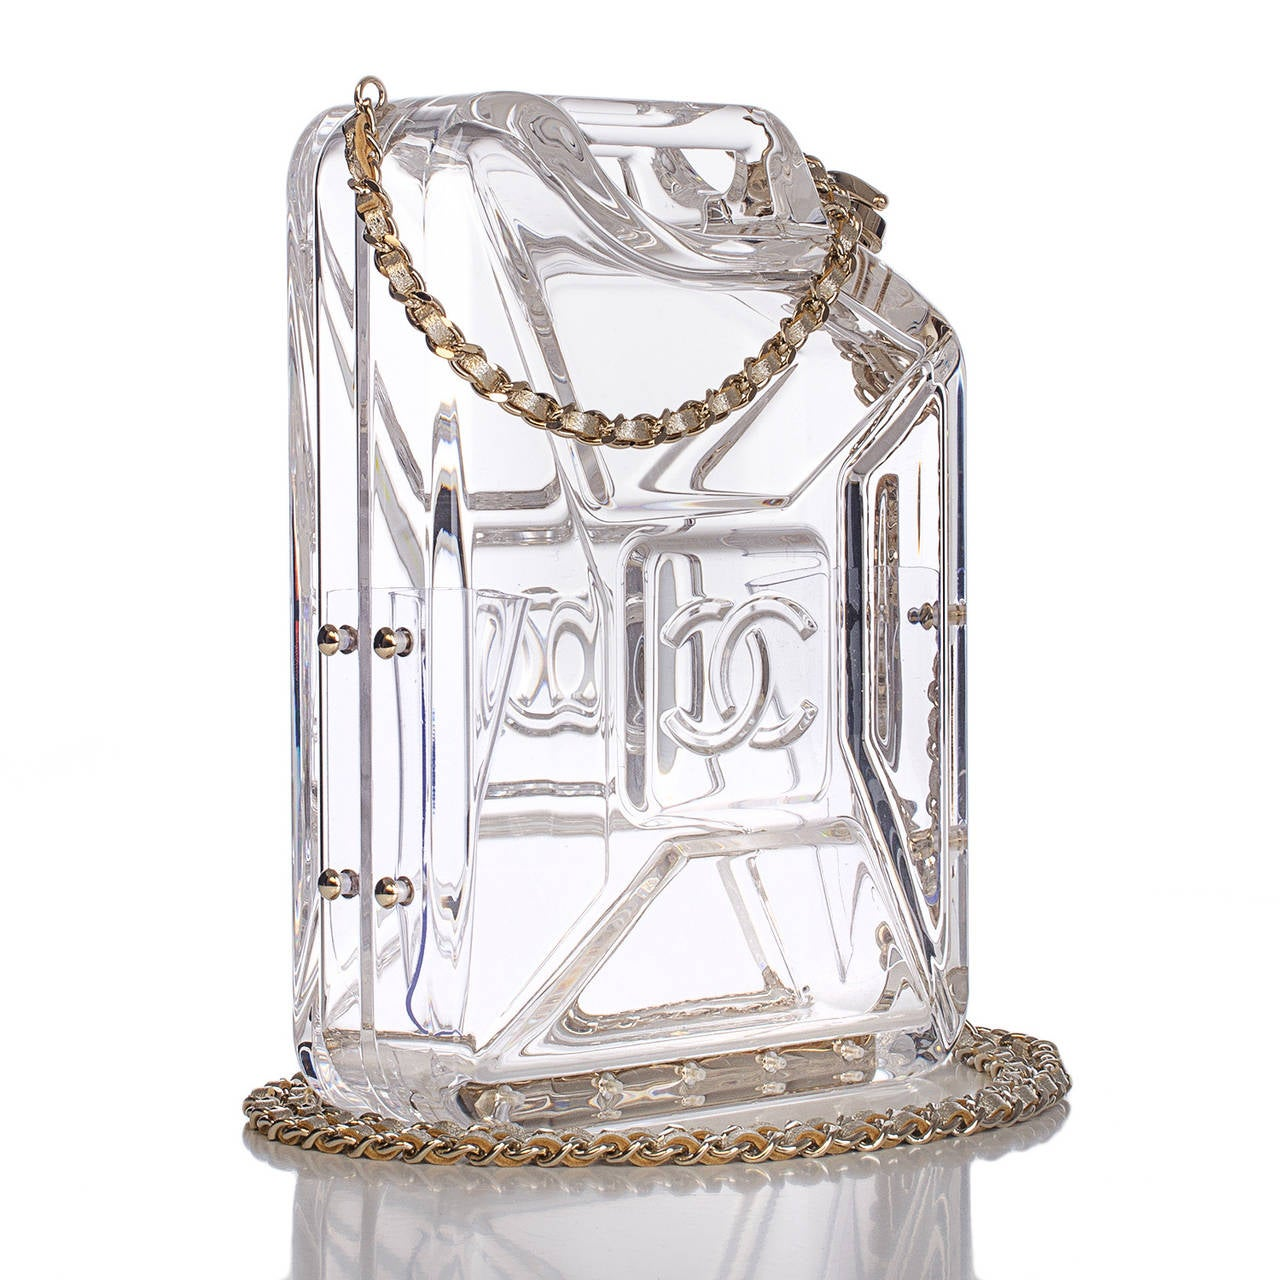 Chanel rare Dubai By Night Gas Tank minaudière bag of clear plexiglass with light gold tone metal hardware.